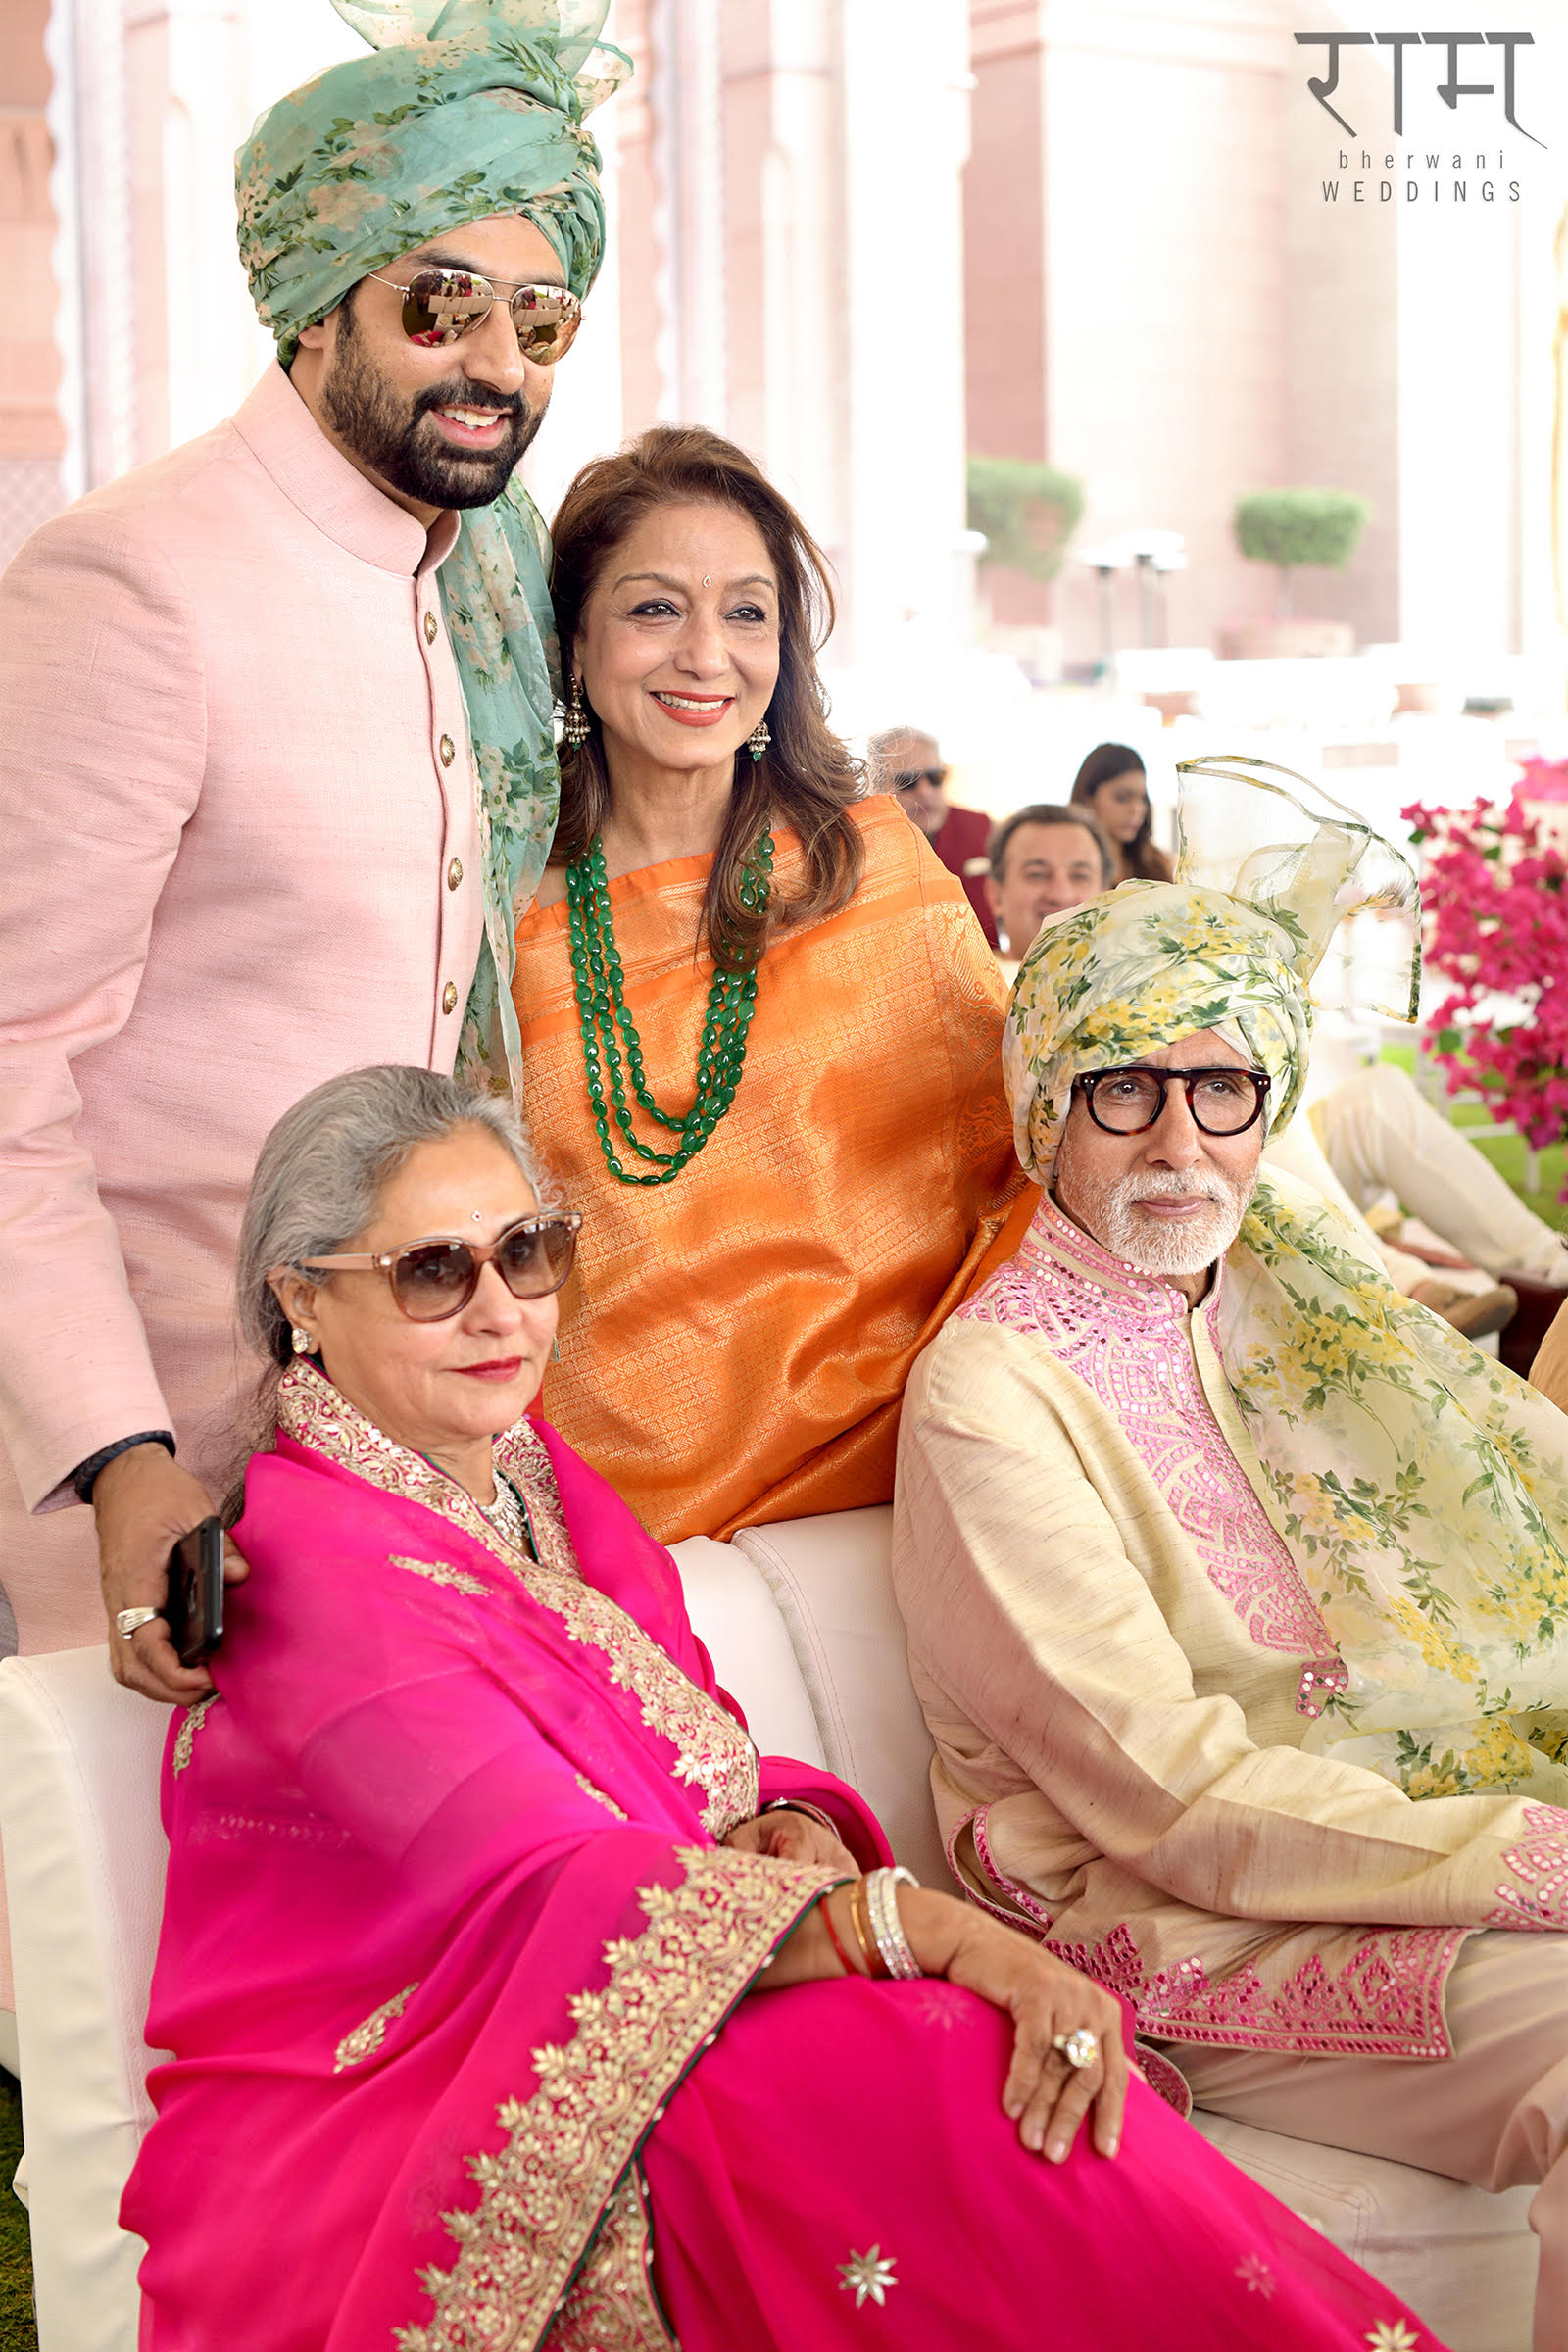 Ram Bherwani Captures Abu Dhabi Wedding by MEW Featuring Amitabh & Abhishek Bachchan!